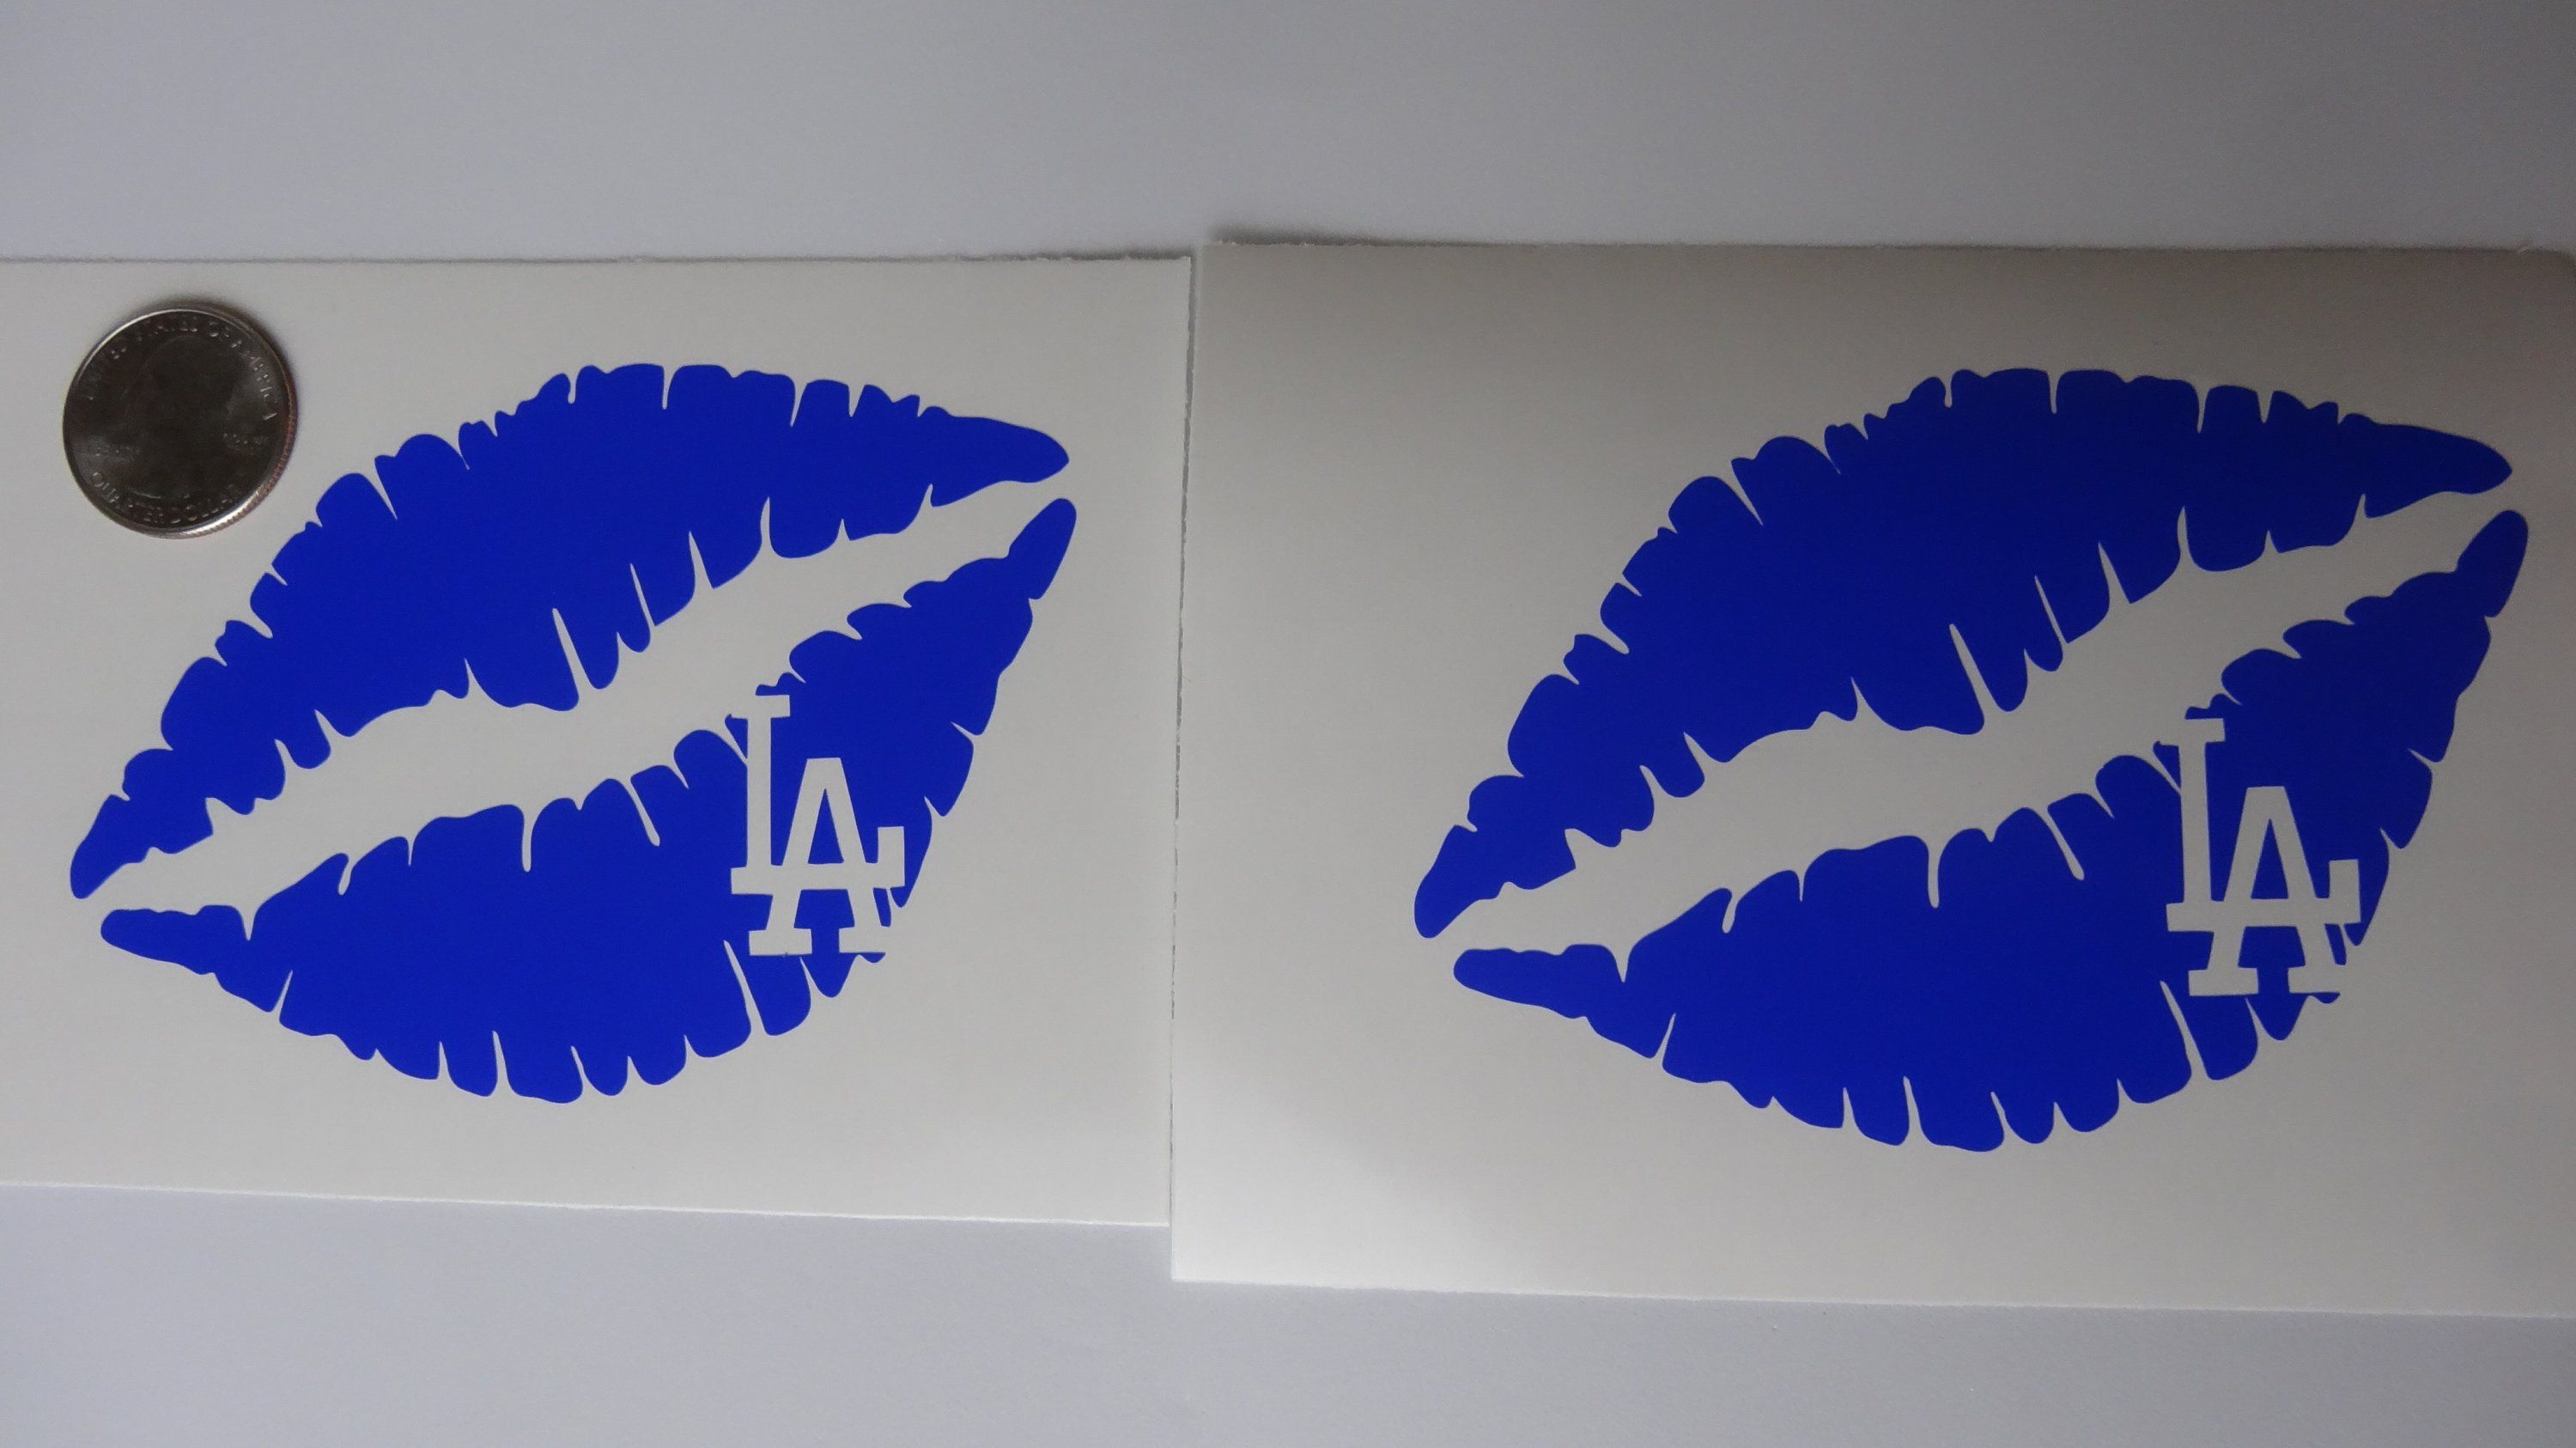 La Dodgers 2x Lips Car Decal Tumbler By Veiledtrove On Etsy Dodgers La Ladodgers Tattoo Lakers Angels Clippers Baseball Pictures Dodgers Baseball Gifts [ 1686 x 3000 Pixel ]